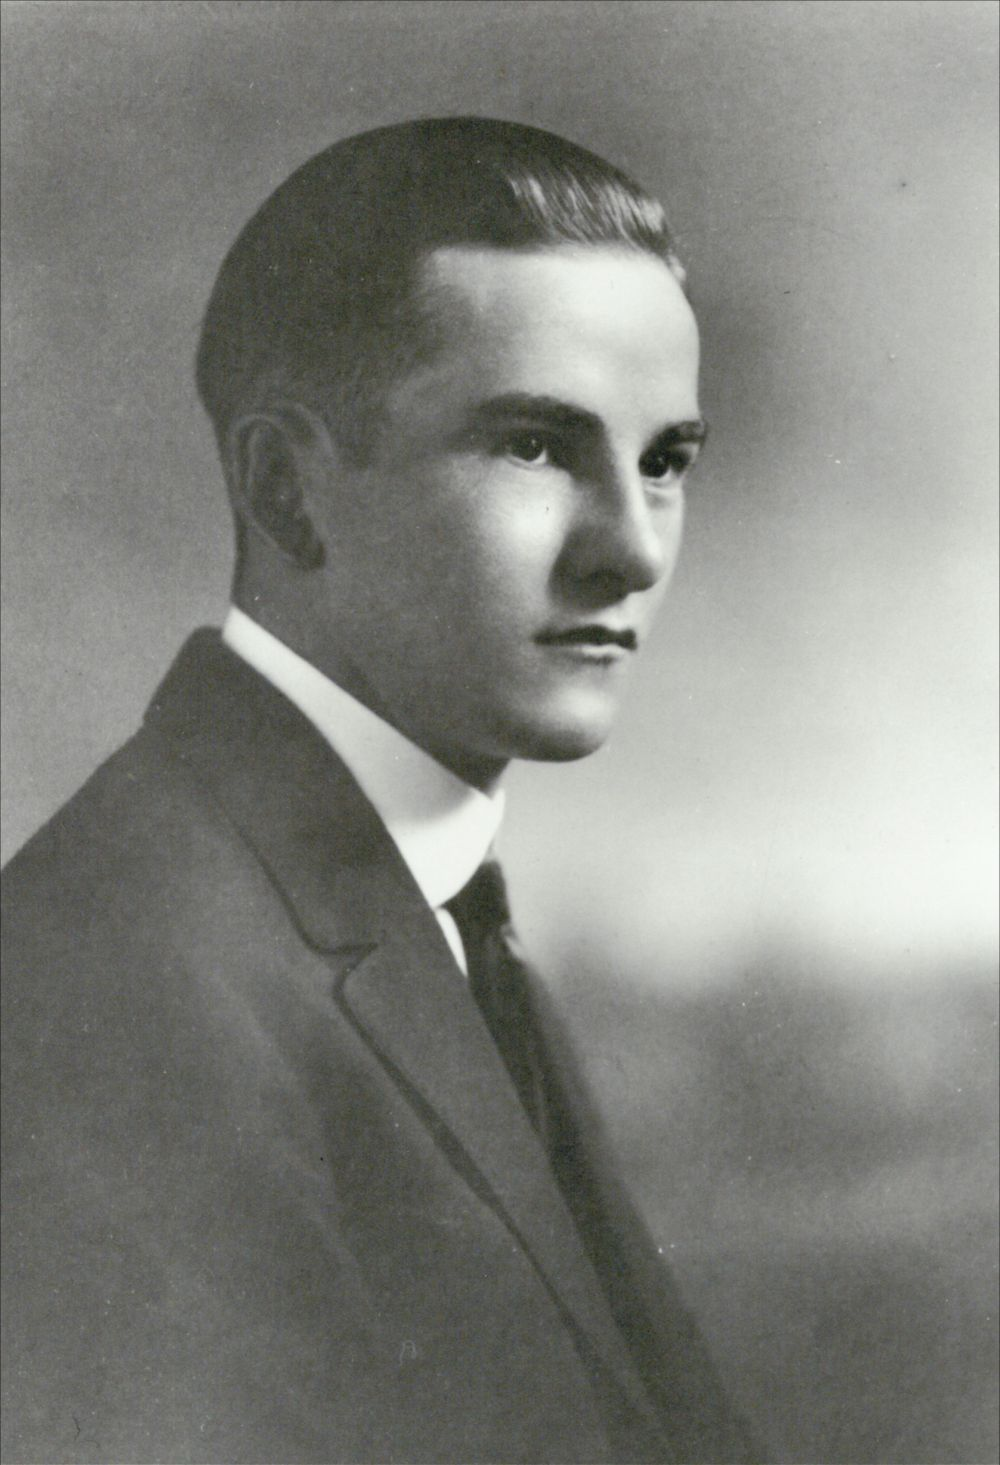 Harry Walter Colmery, as a young man.